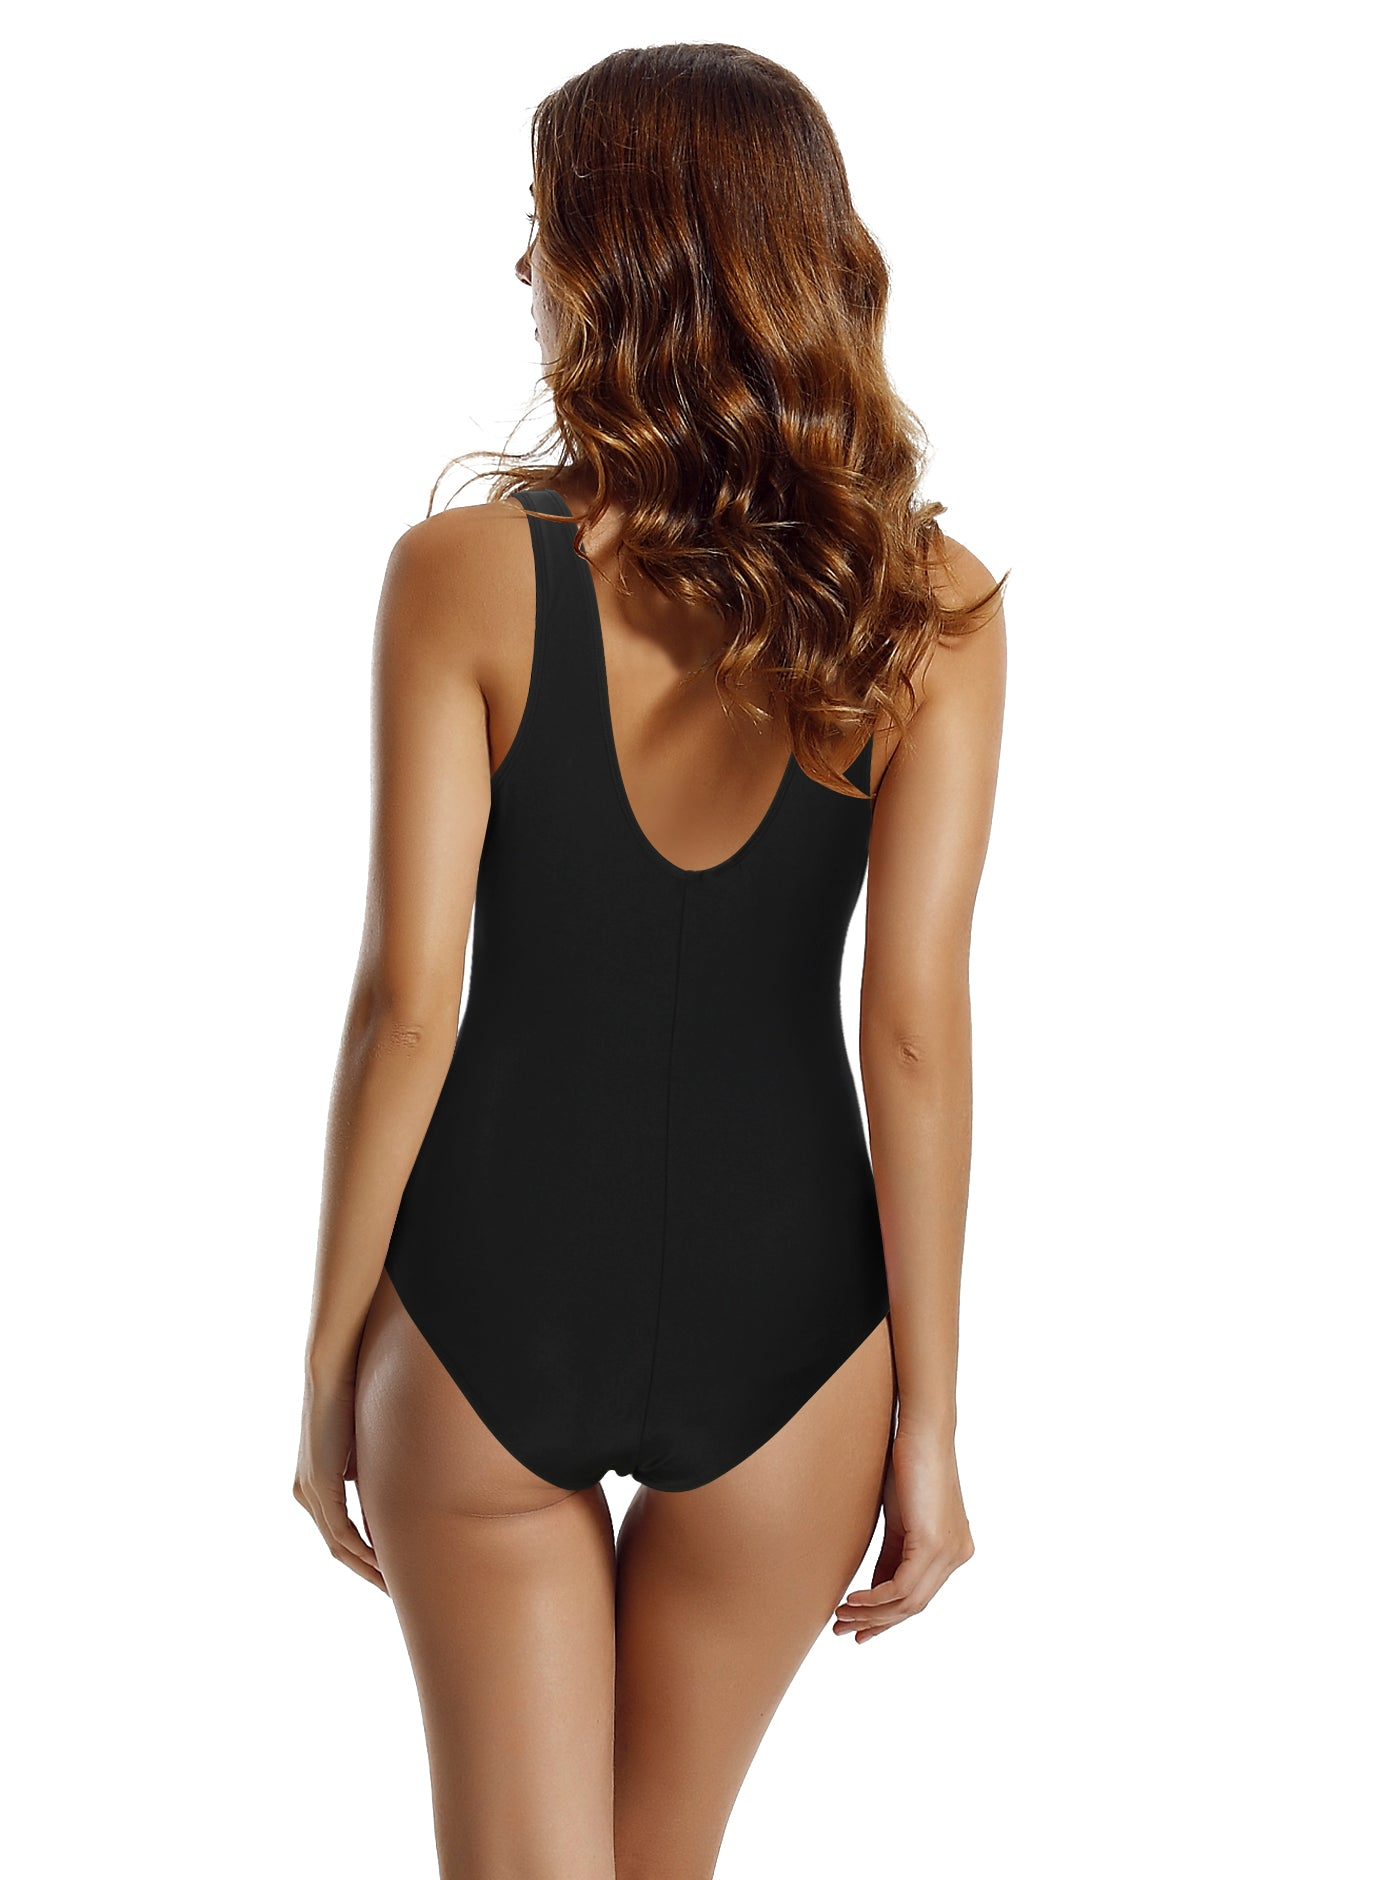 60cacfab4a8f4 Zeraca Women's Tie Front Plunge High Waisted One Piece Swimsuit Monokini